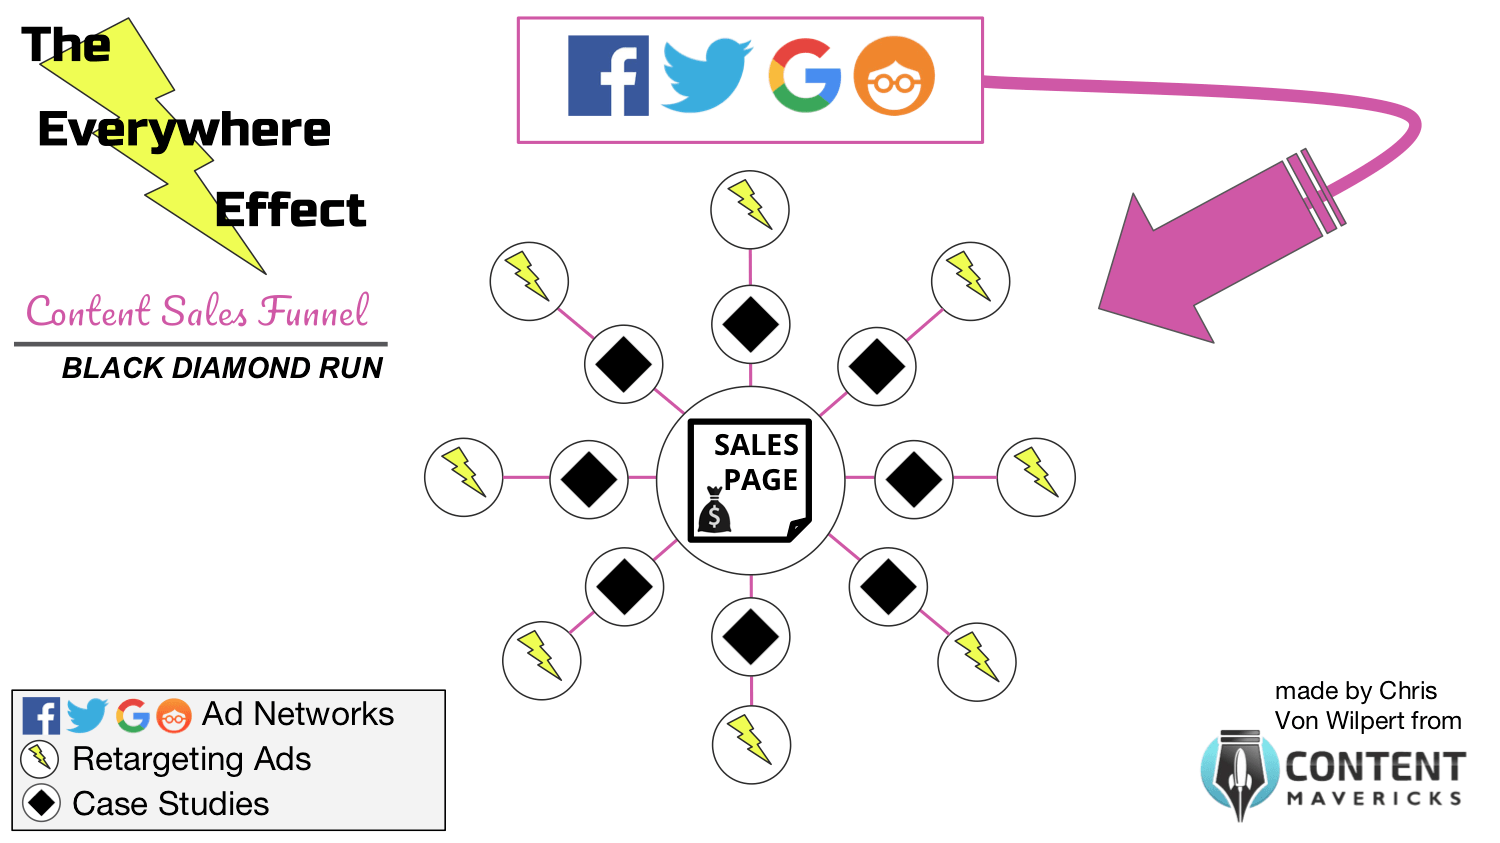 everywhere effect content sales funnel image